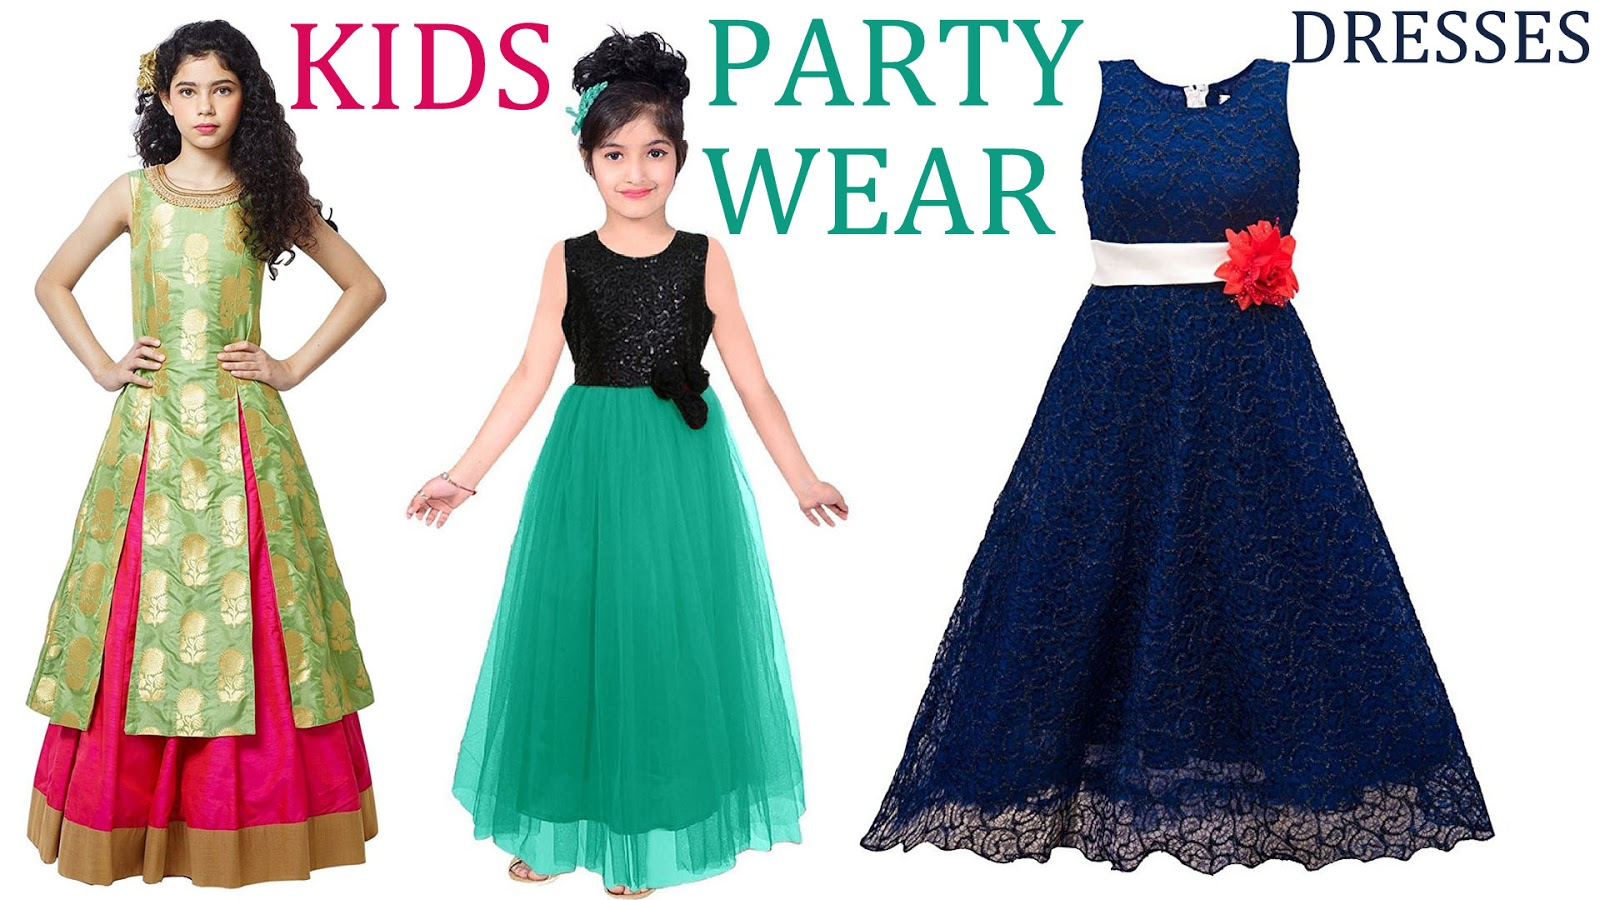 Addchunks: Party wear dresses for girls | girls dresses | kids party ...